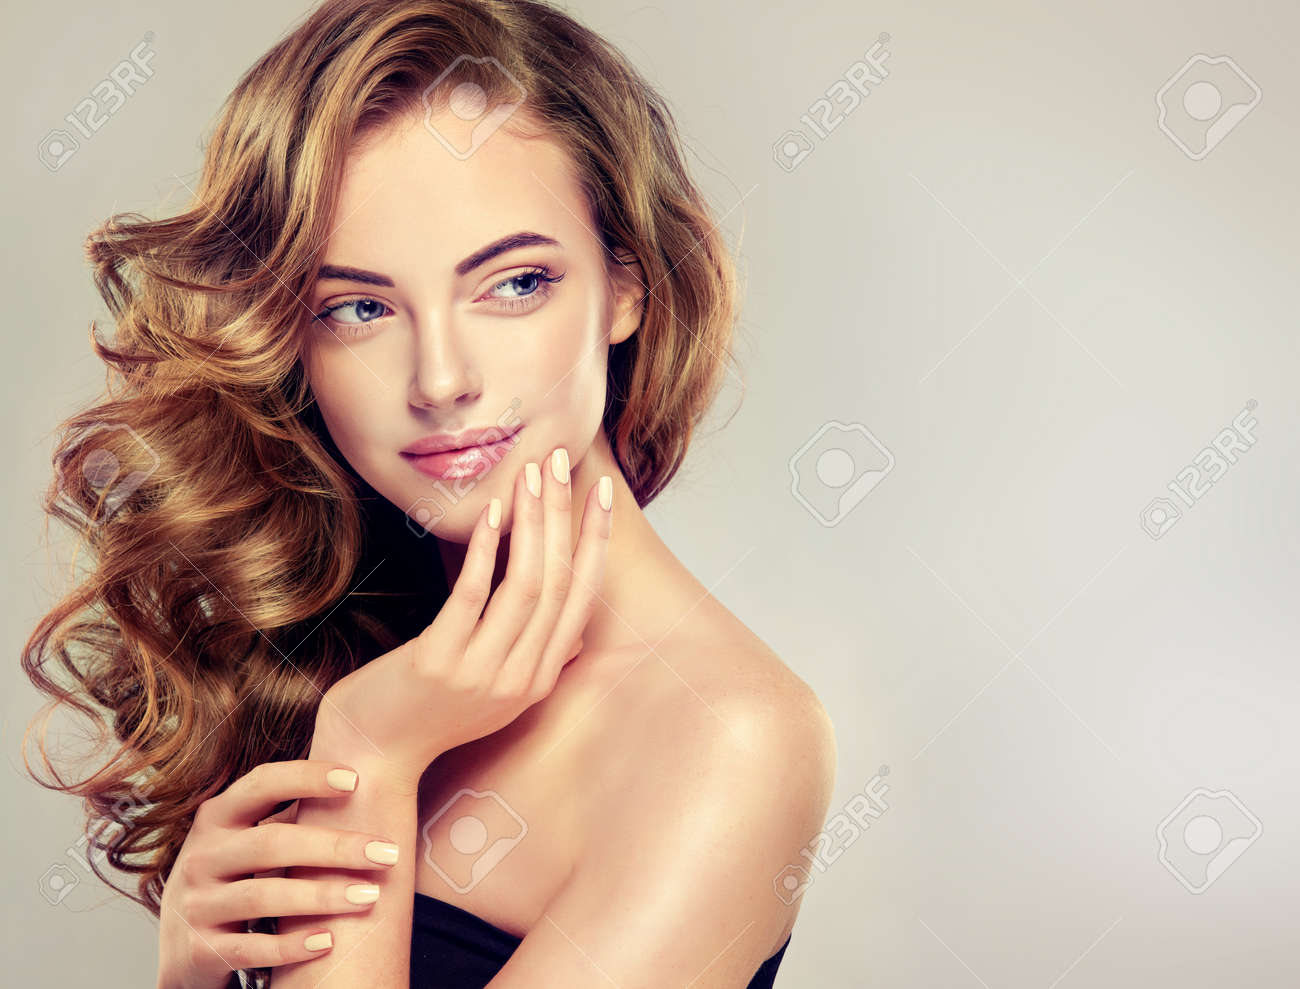 Beautiful Girl With Long Wavy Hair . Brunette Model With Curly Hairstyle  Stock Photo   53032293